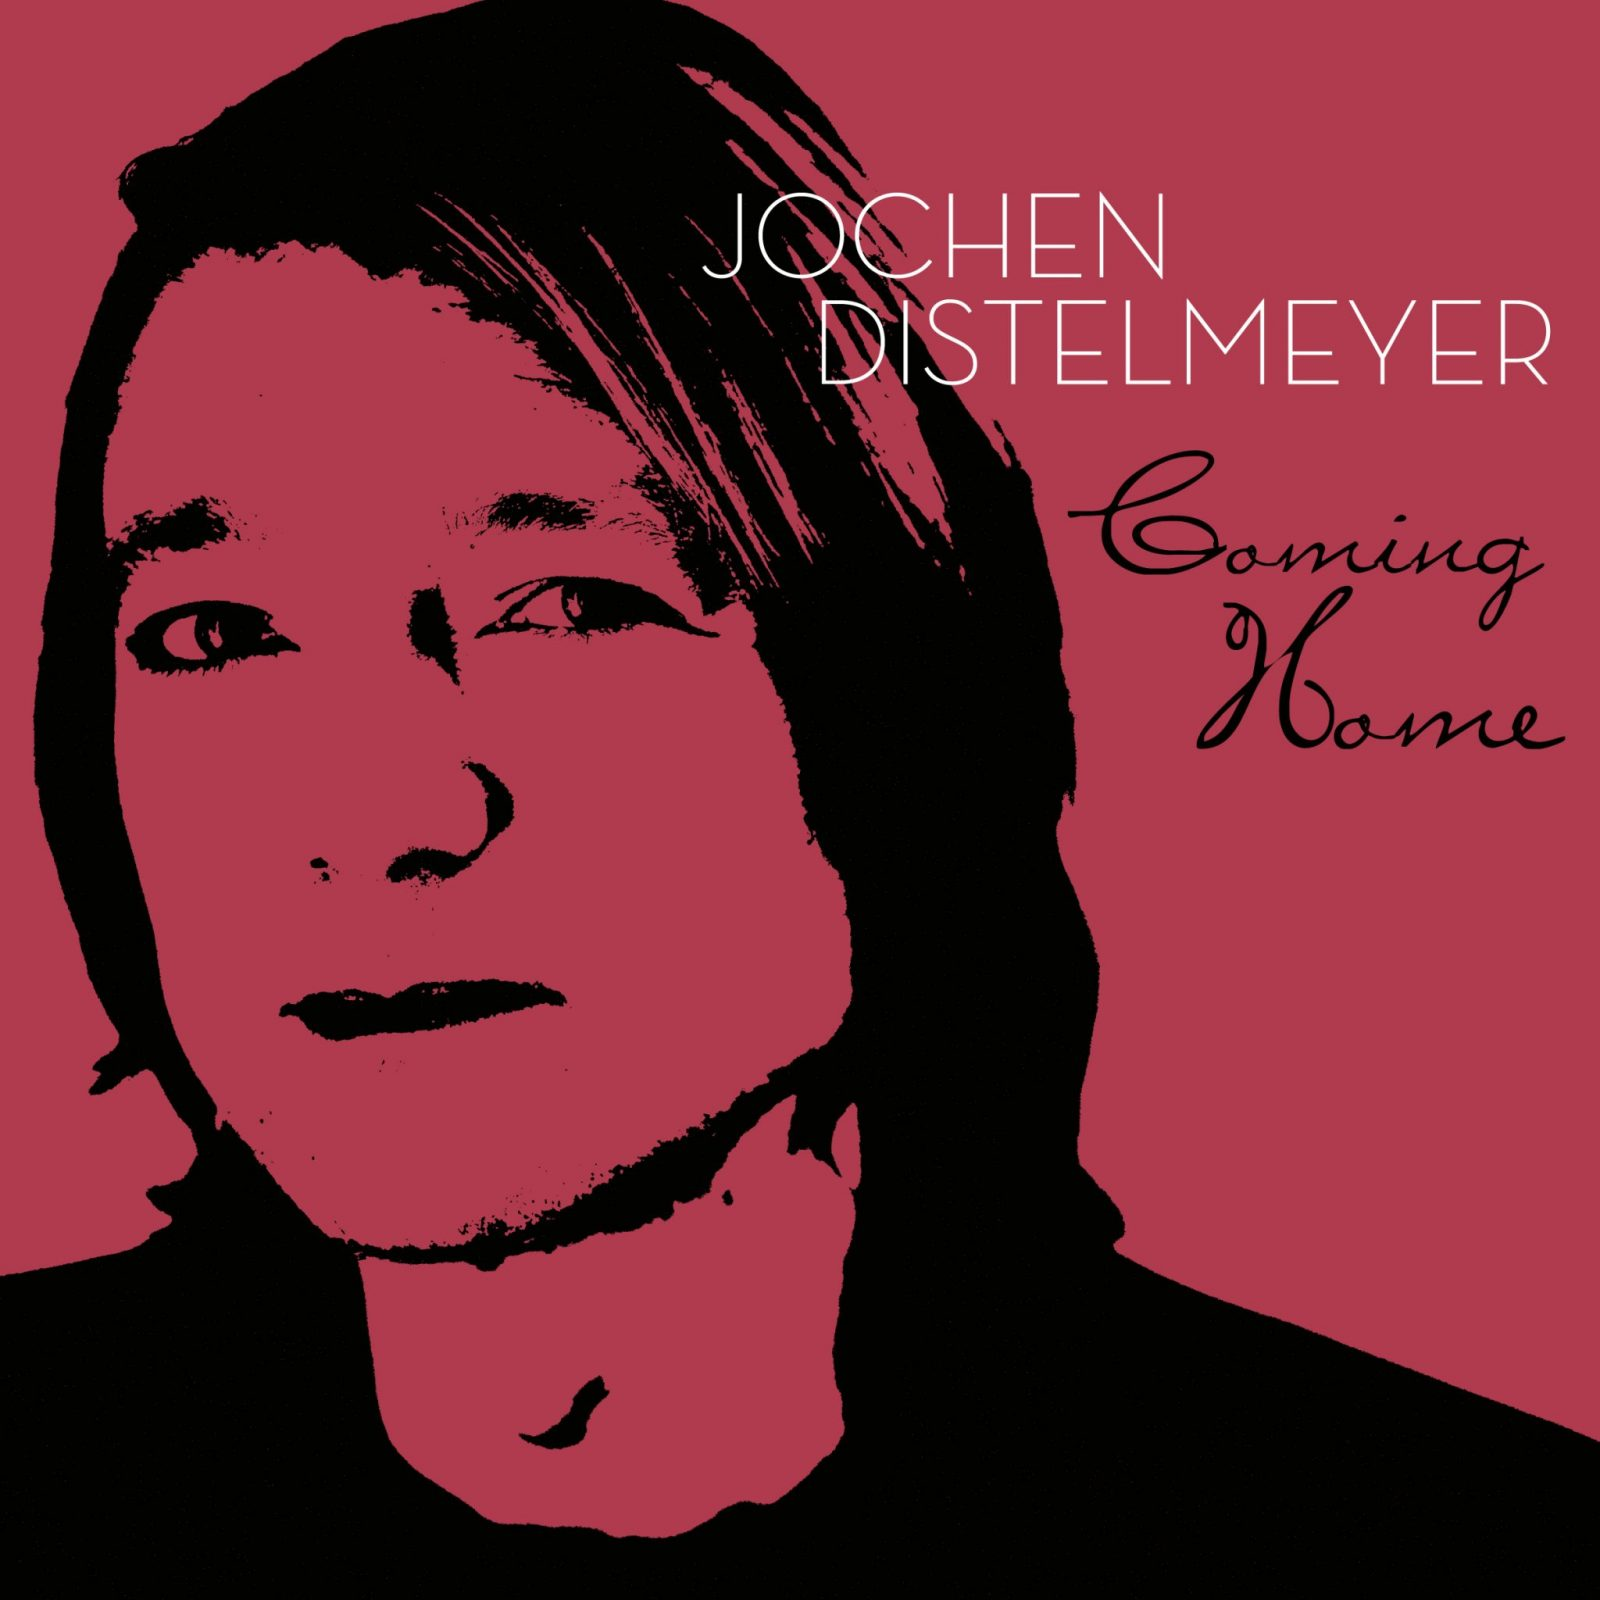 Jochen Distelmeyer – Coming Home